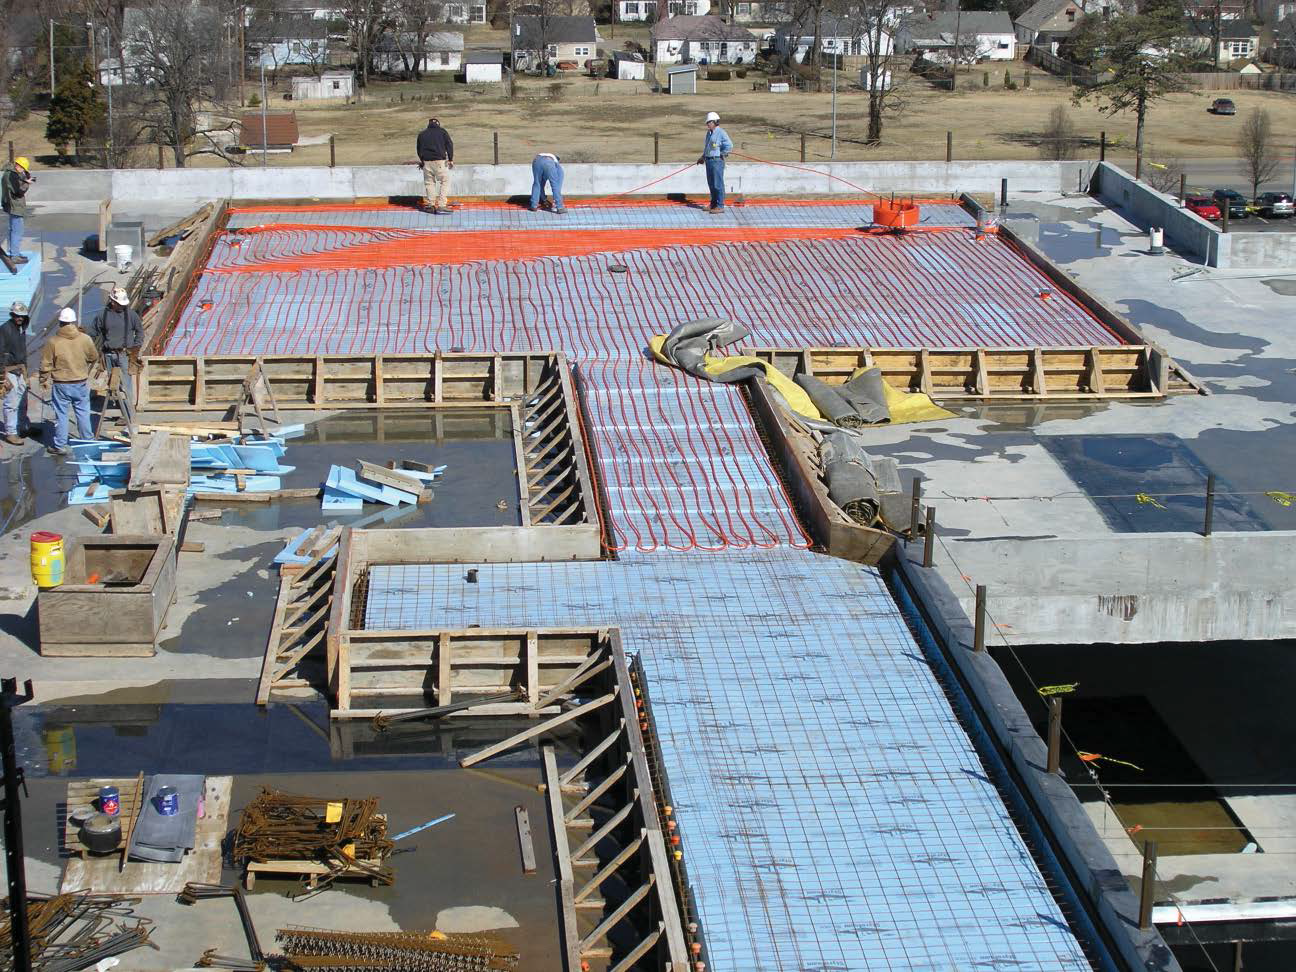 Radiant heat being installed under a helicopter pad.